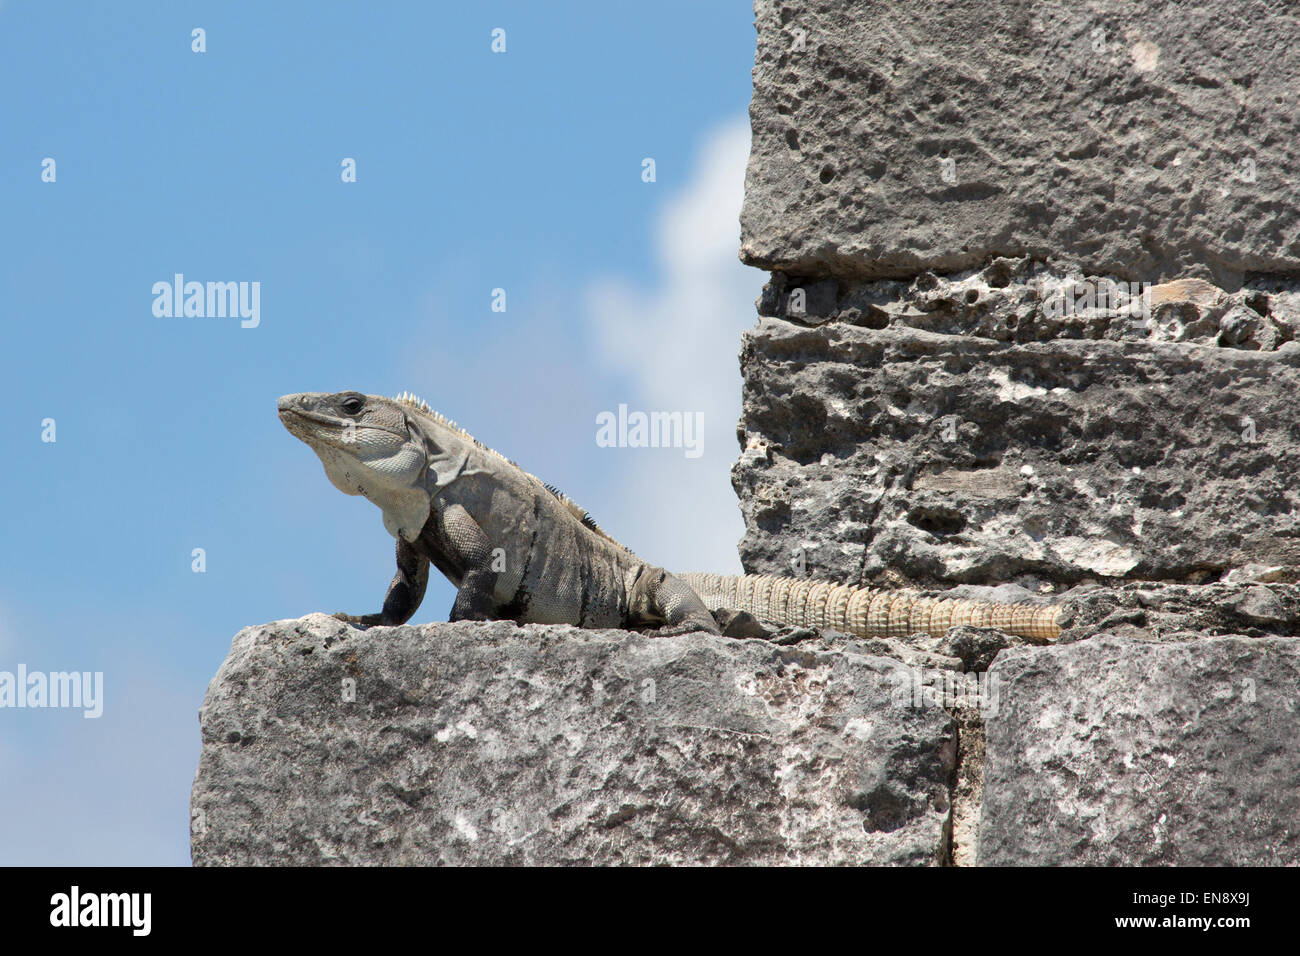 Black Spiny-tailed Iguana (Ctenosaura similis) basking in a window at Tulum, a Pre-Columbian Mayan archaeological - Stock Image